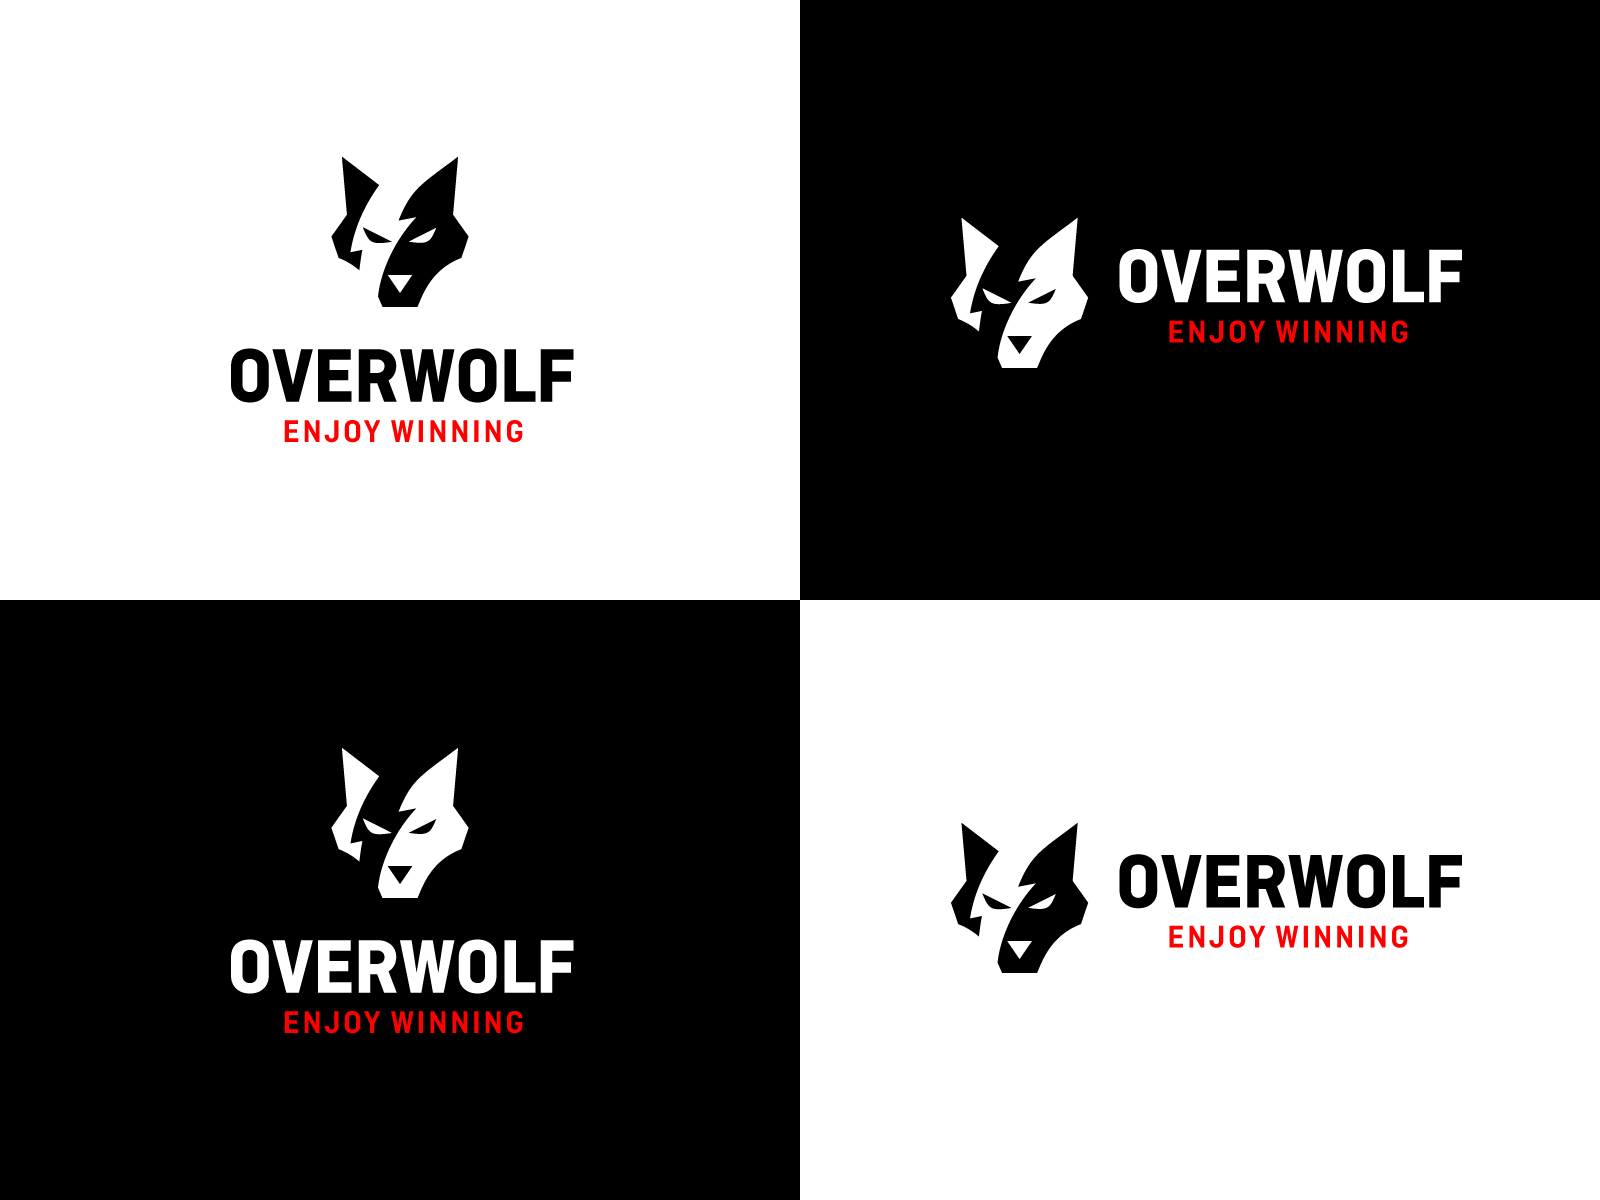 Overwolf variations